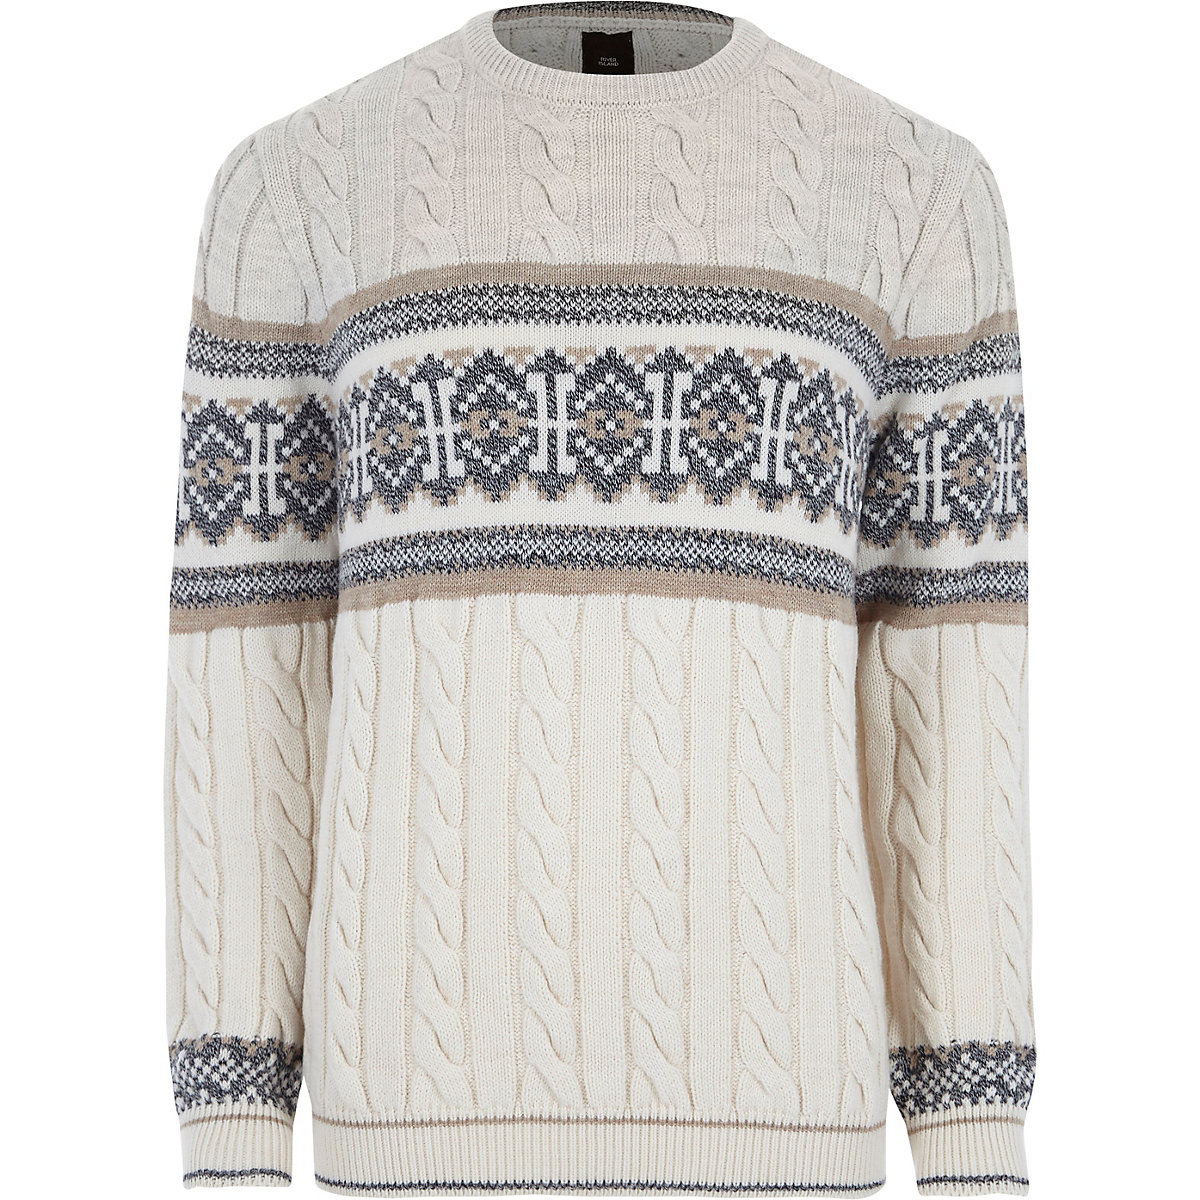 Stone Fairisle cable knit Christmas jumper